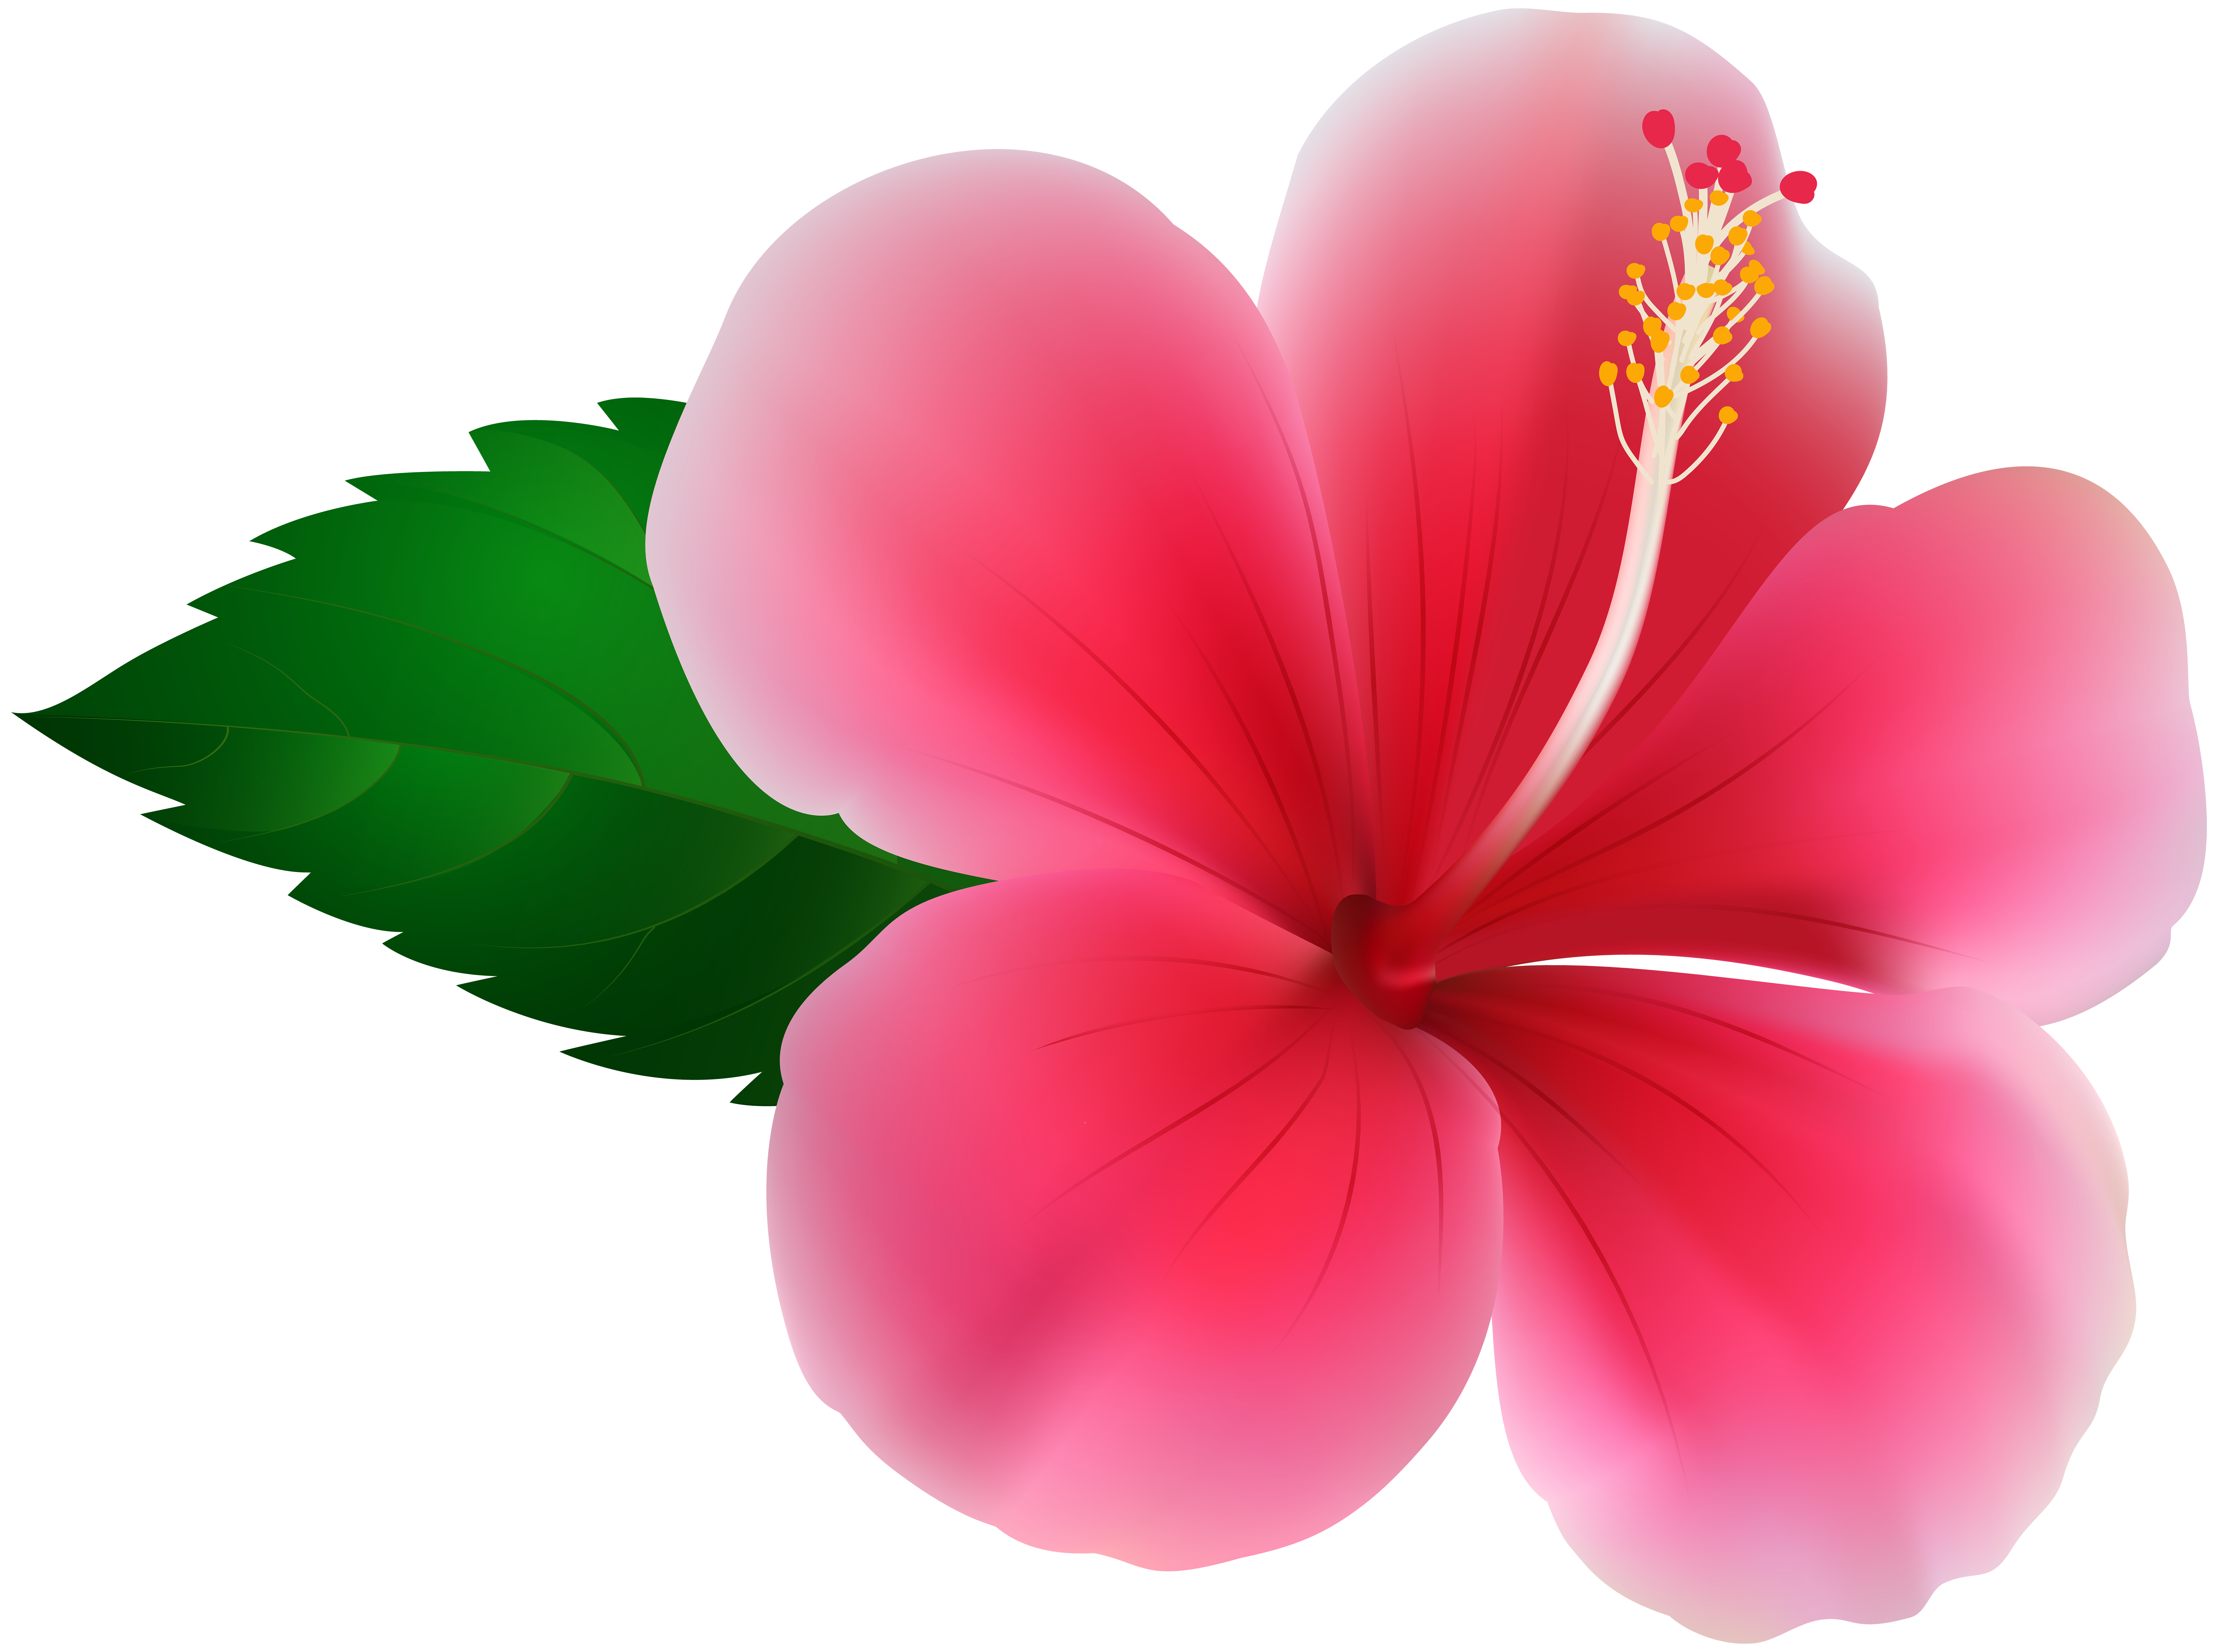 Hibiscus flower png. Pink clip art image